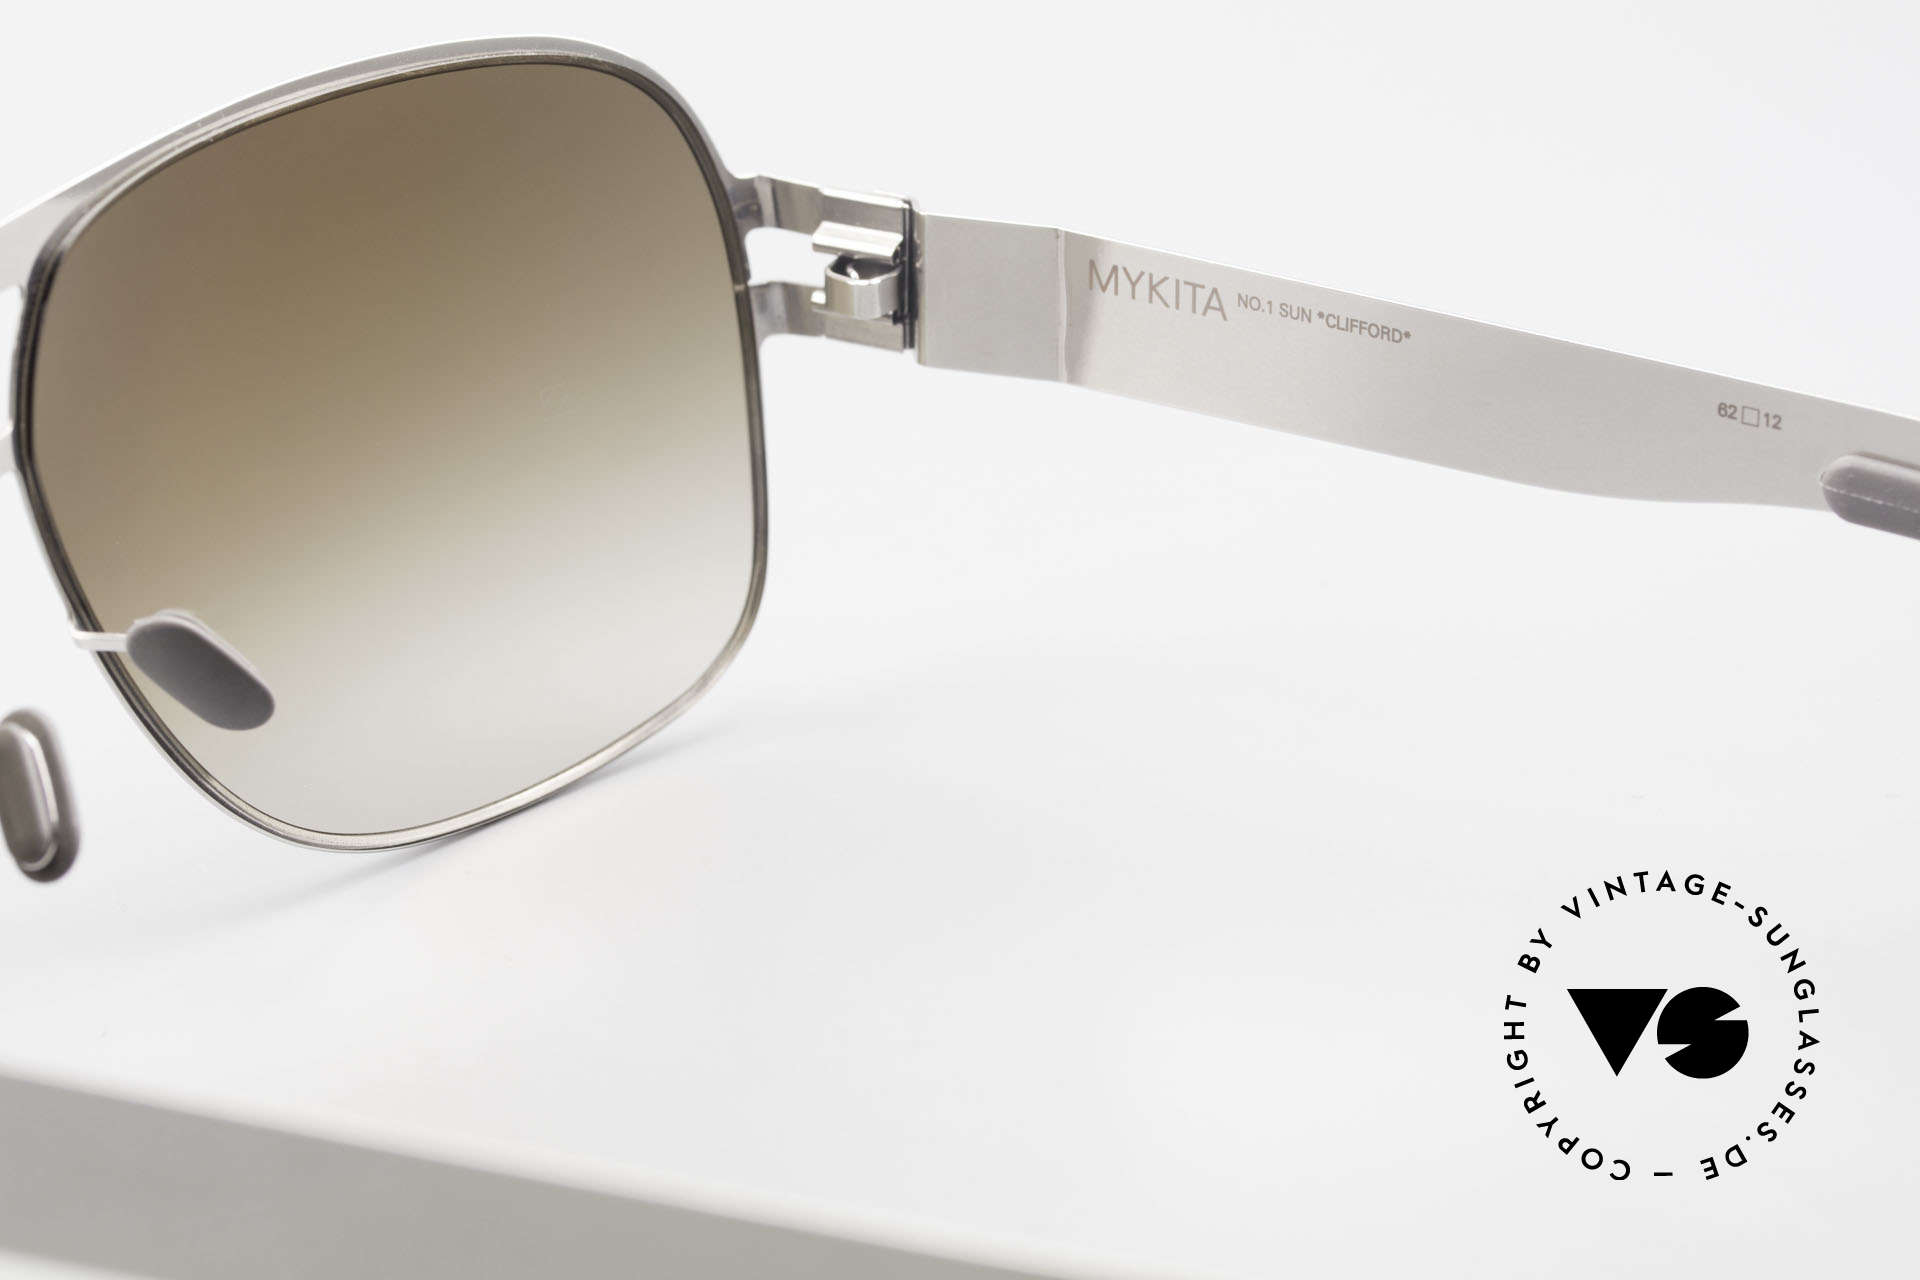 Mykita Clifford 2000's Vintage Aviator Shades, thus, now available from us (unworn and with orig. case), Made for Men